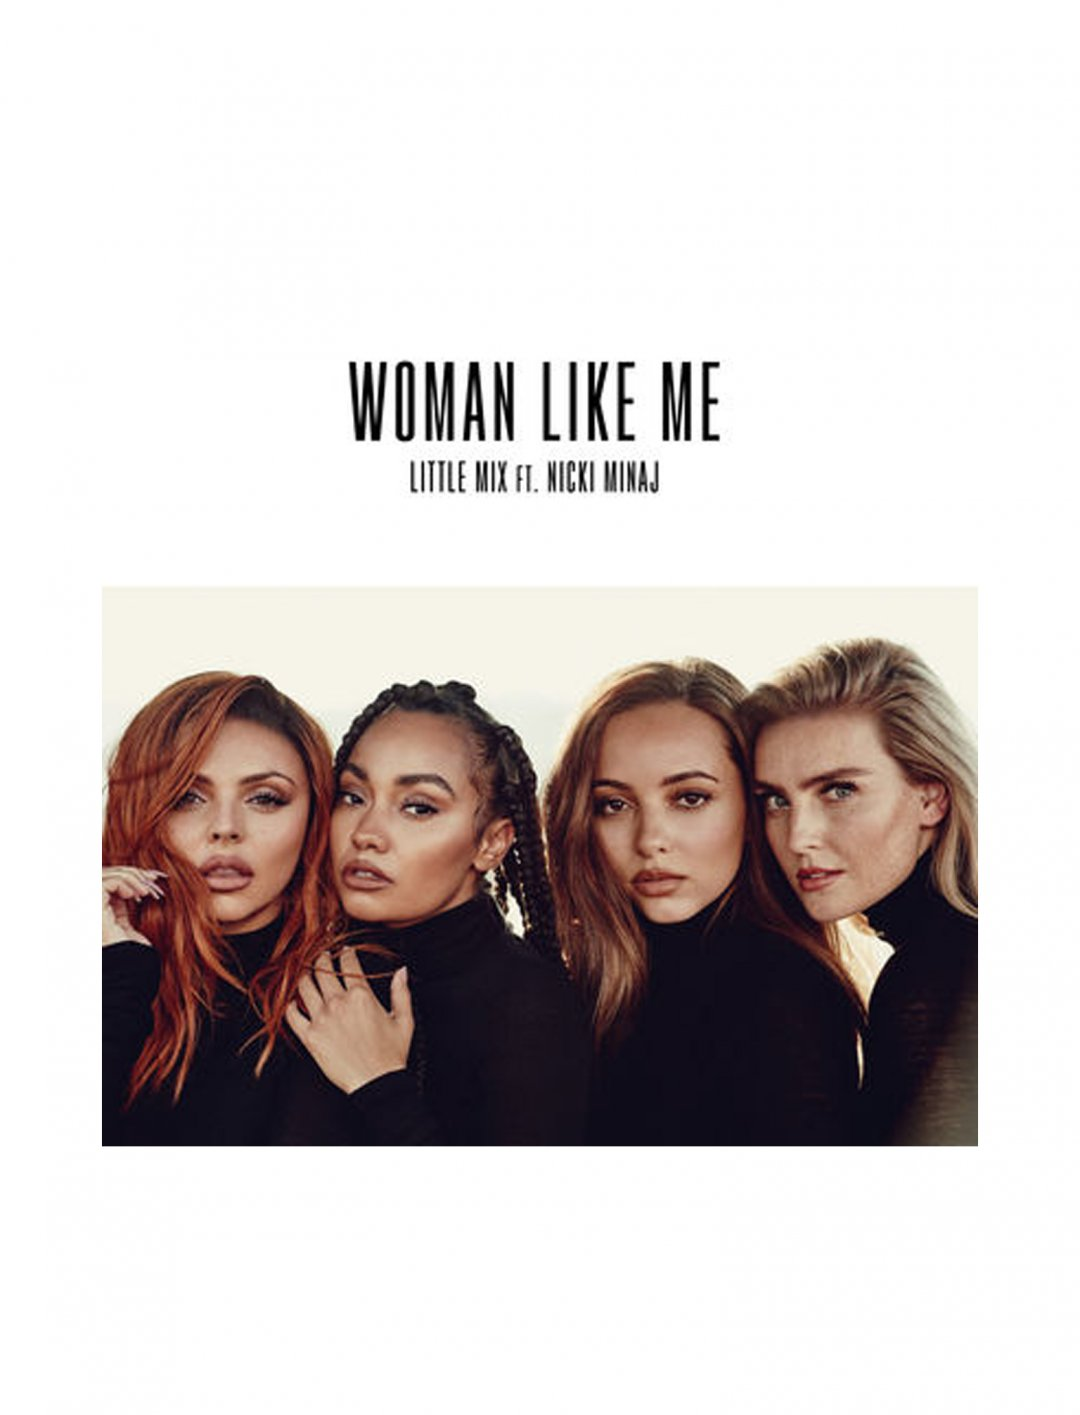 Woman Like Me Single Music & Ringtone Little Mix ft. Nicki Minaj